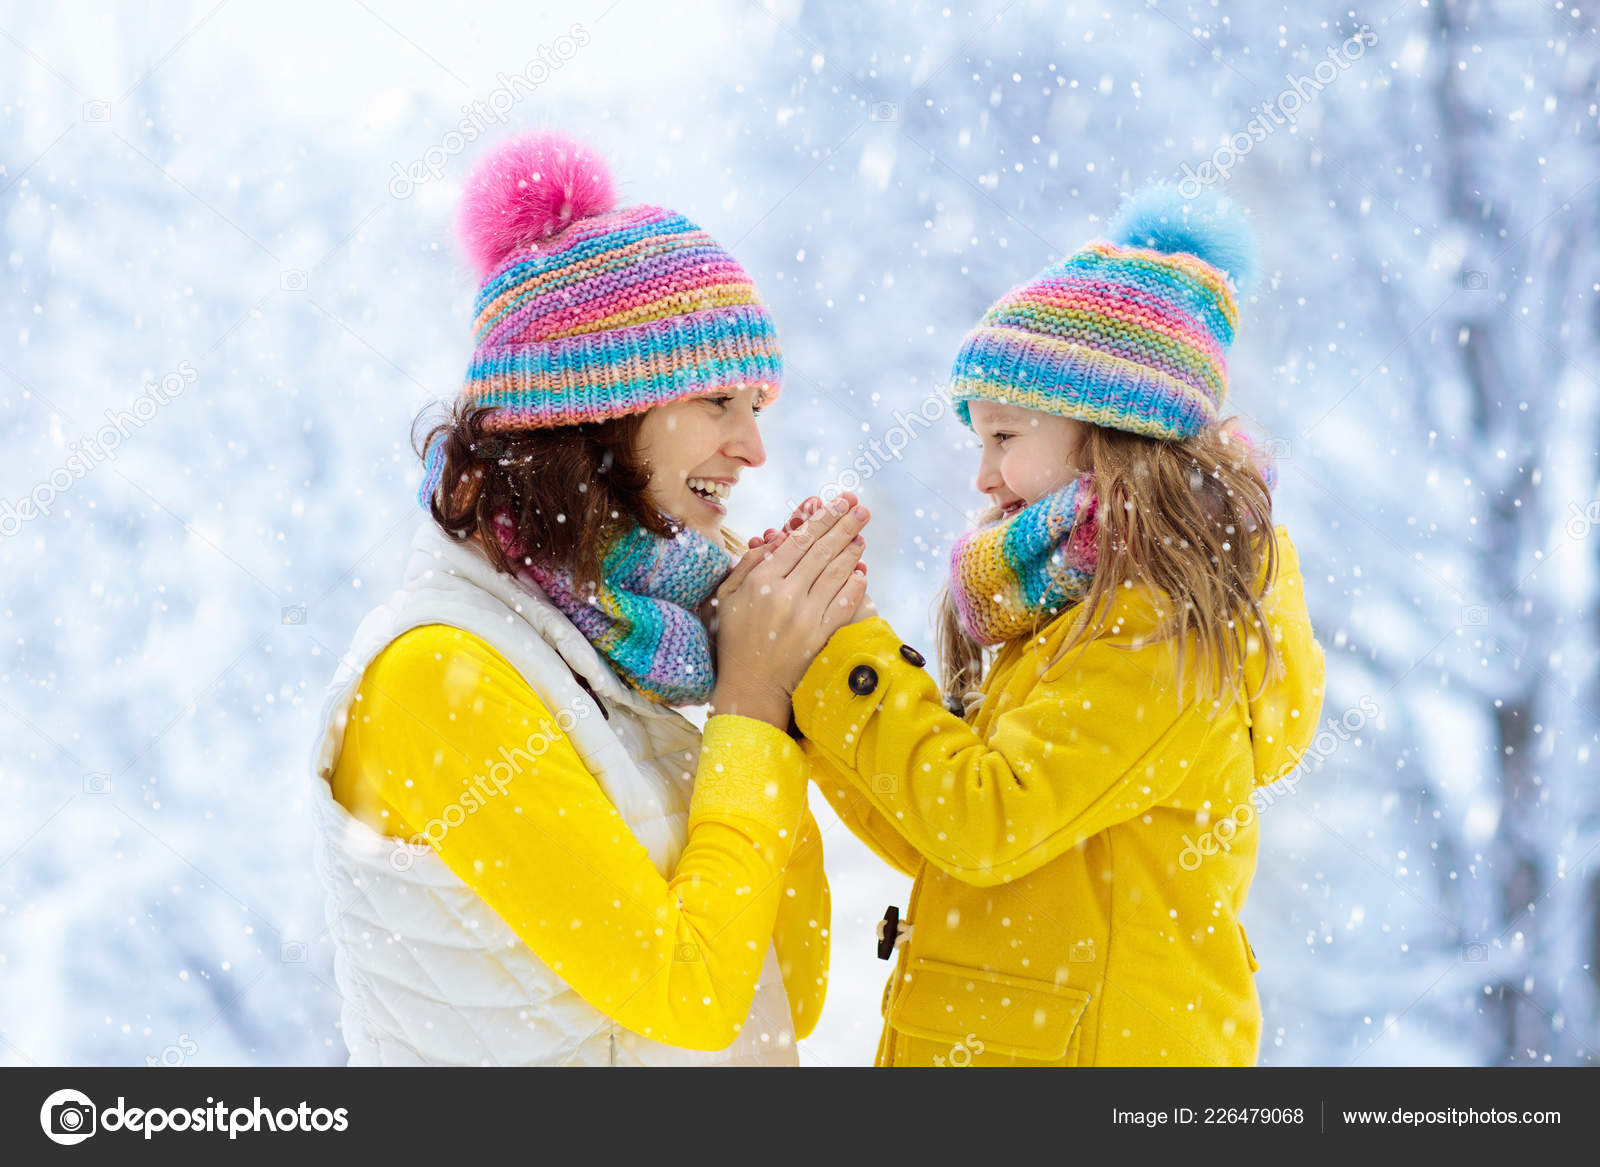 Mother and child in knitted winter hats play in snow on family Christmas  vacation. Handmade wool hat and scarf for mom and kid. Knitting for kids. ff89d556da57